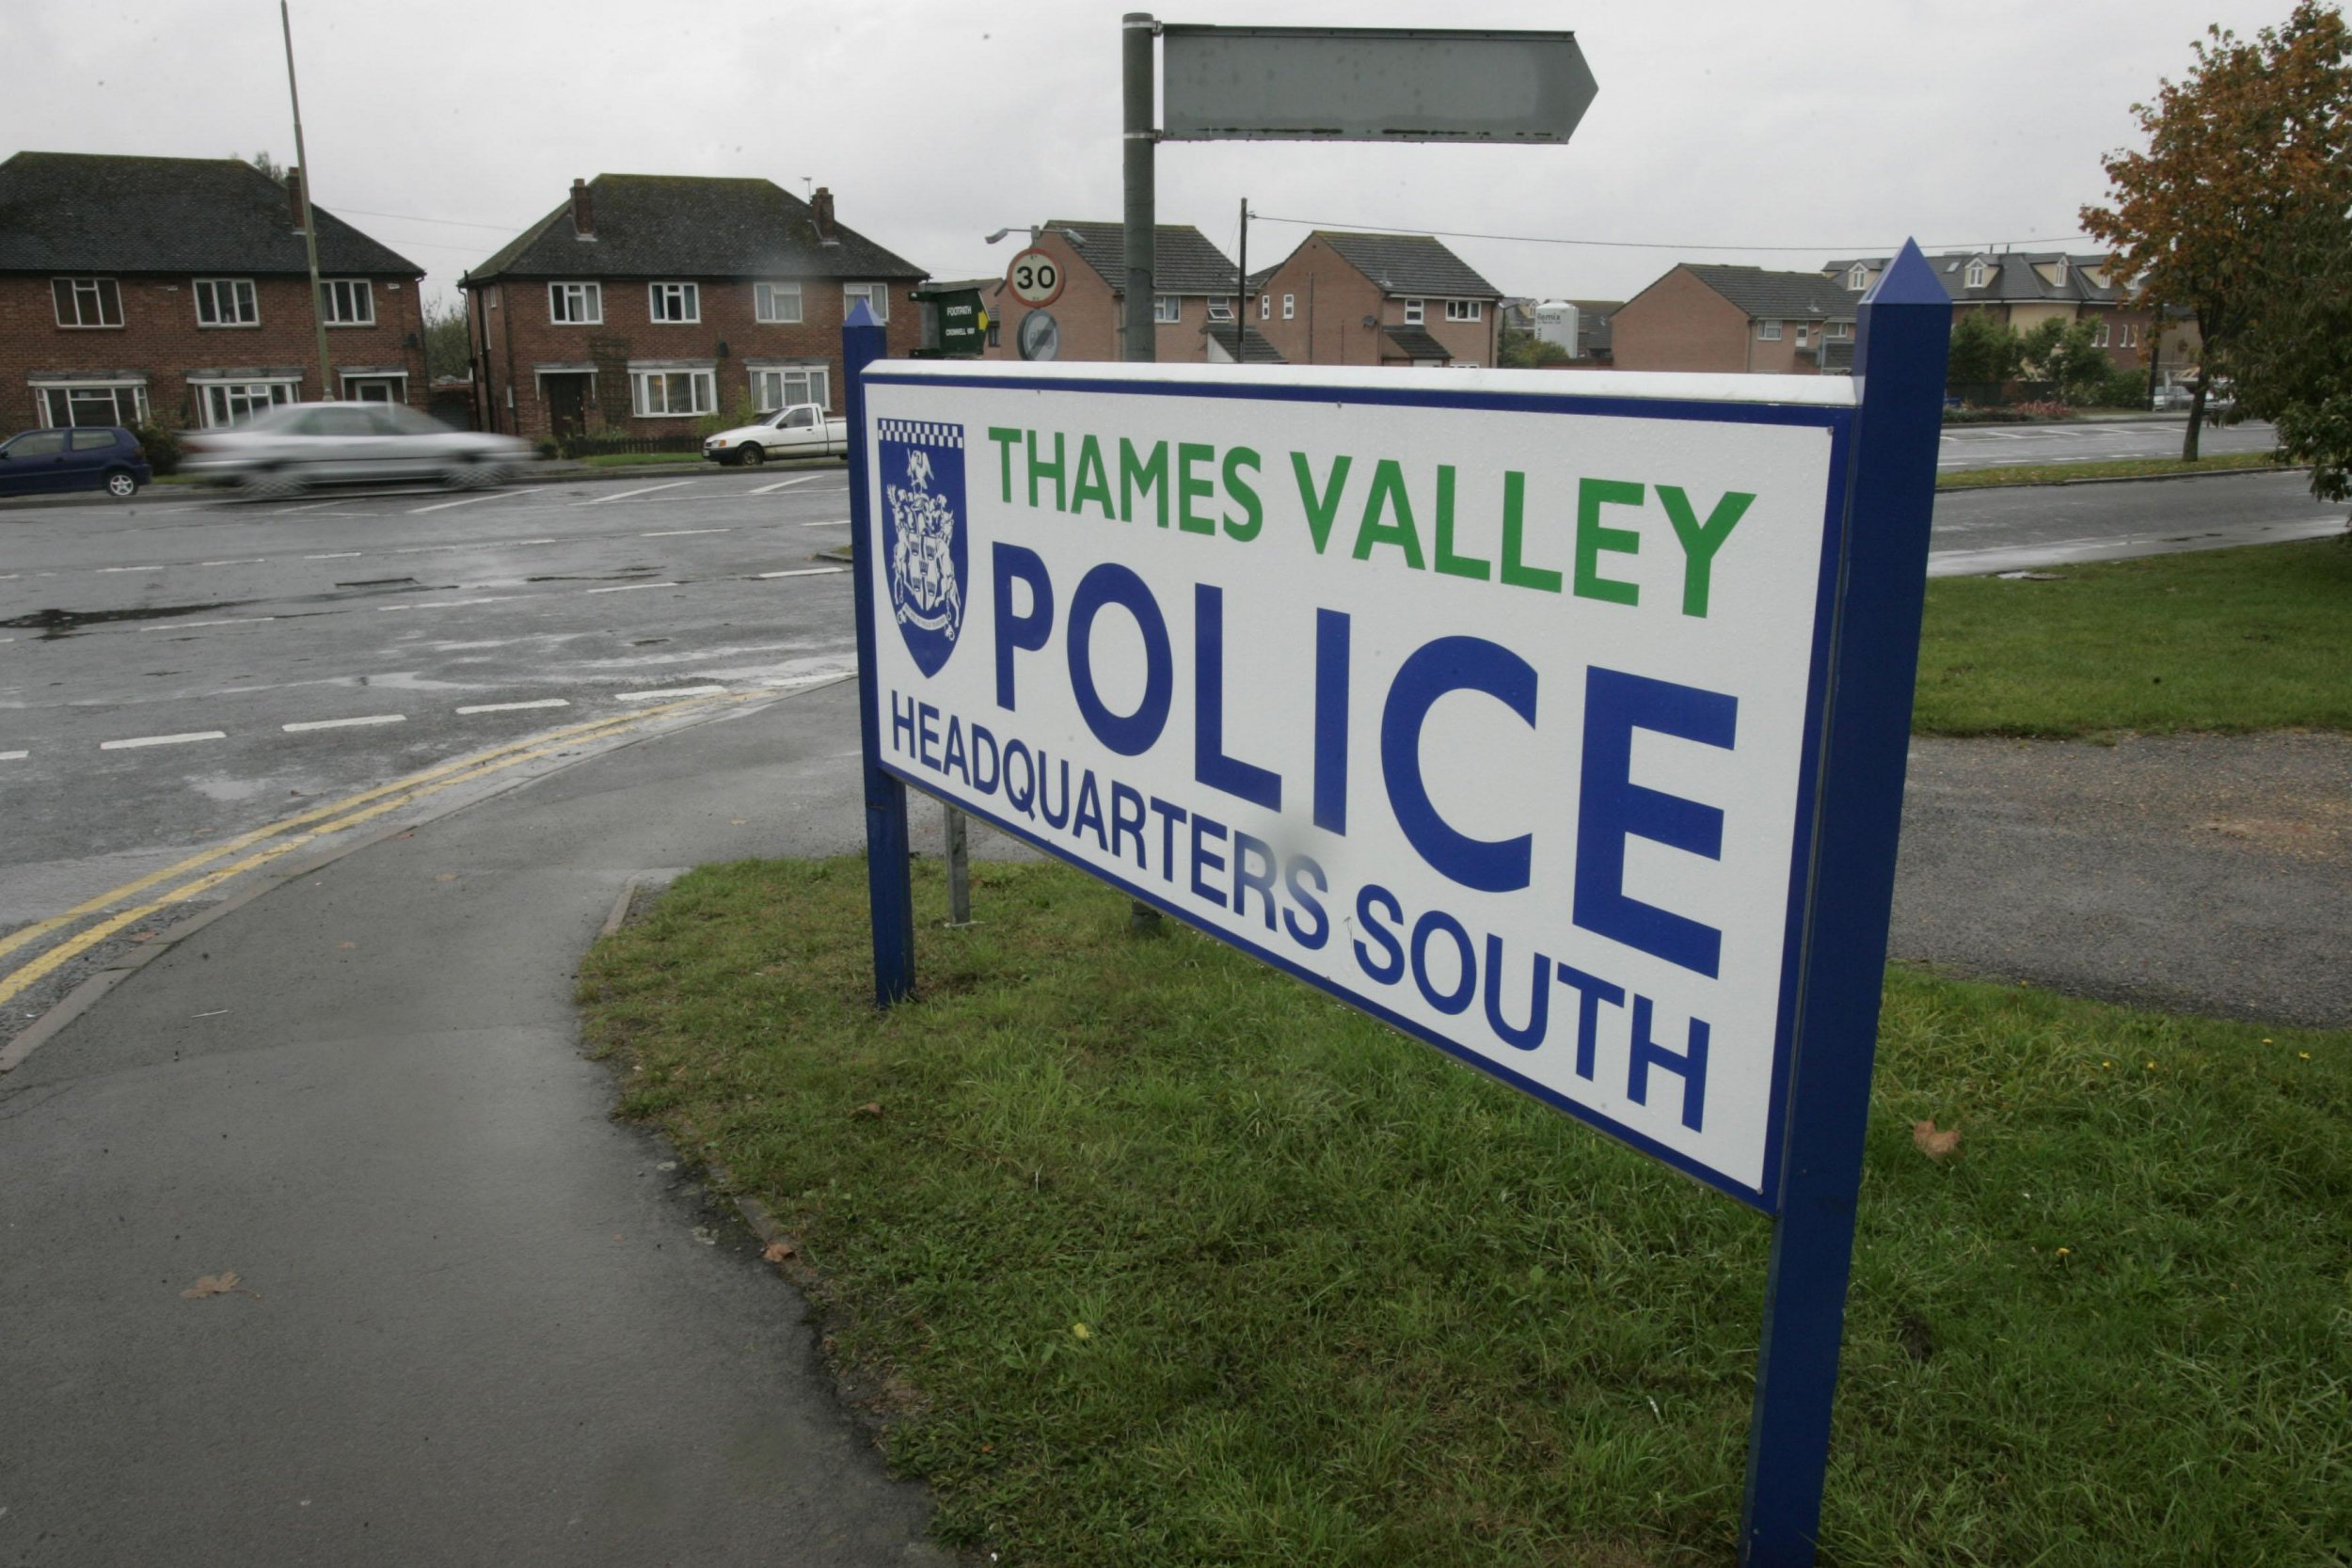 General view of the sign outside Thames Valley Police Head Quarters.